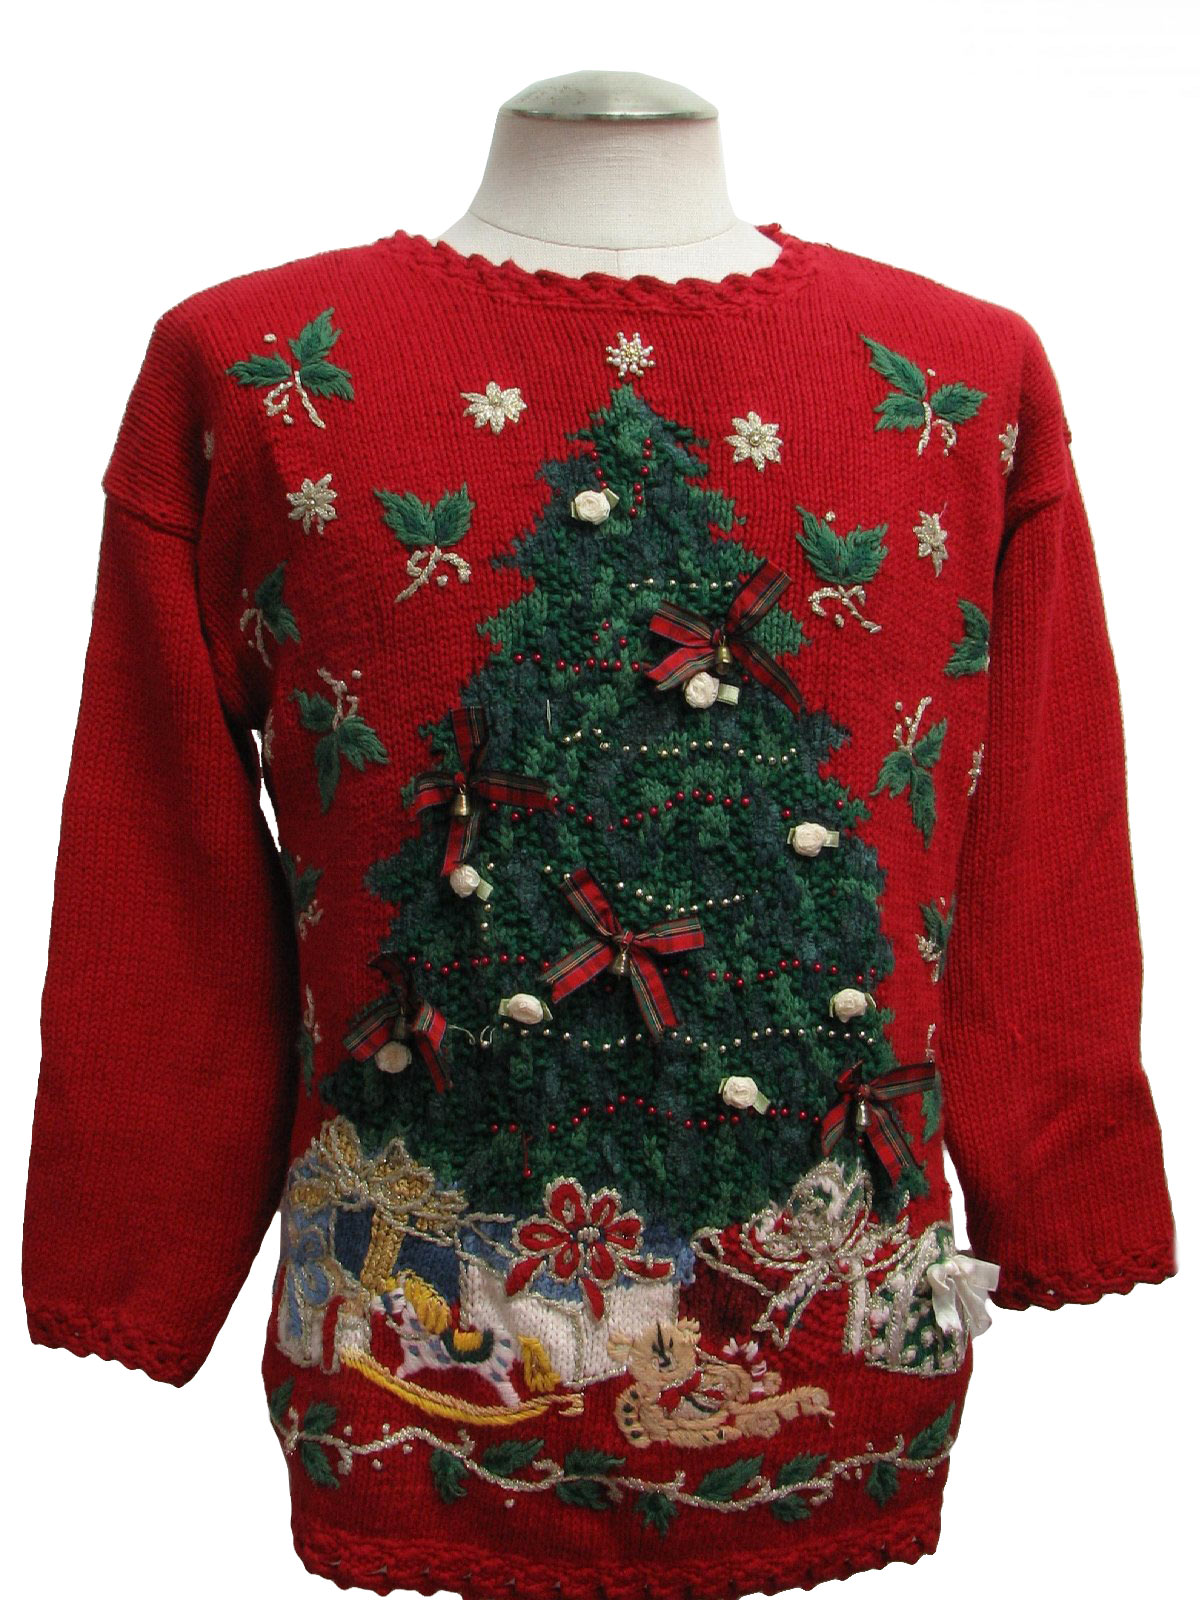 Womens Super Ugly Christmas Sweater: -Tiara- Womens red background ...